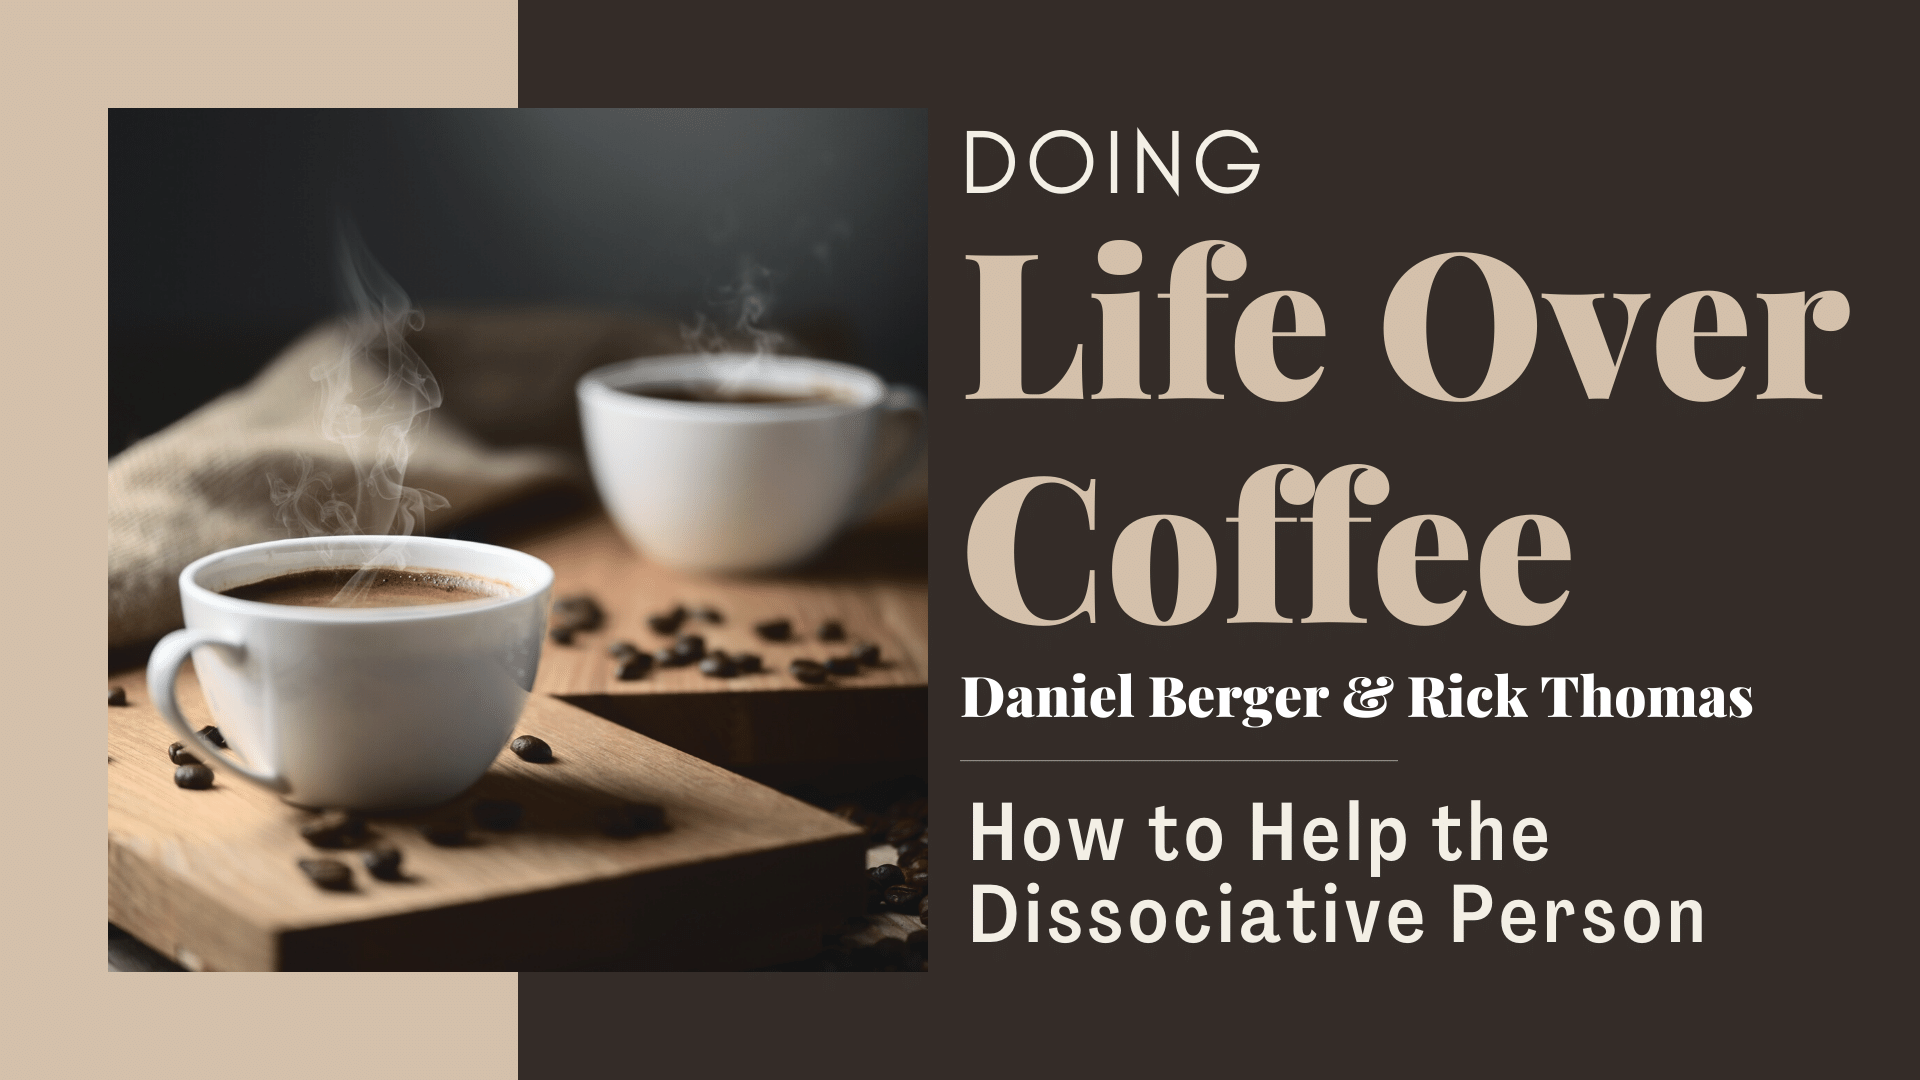 How to Help the Dissociative Person